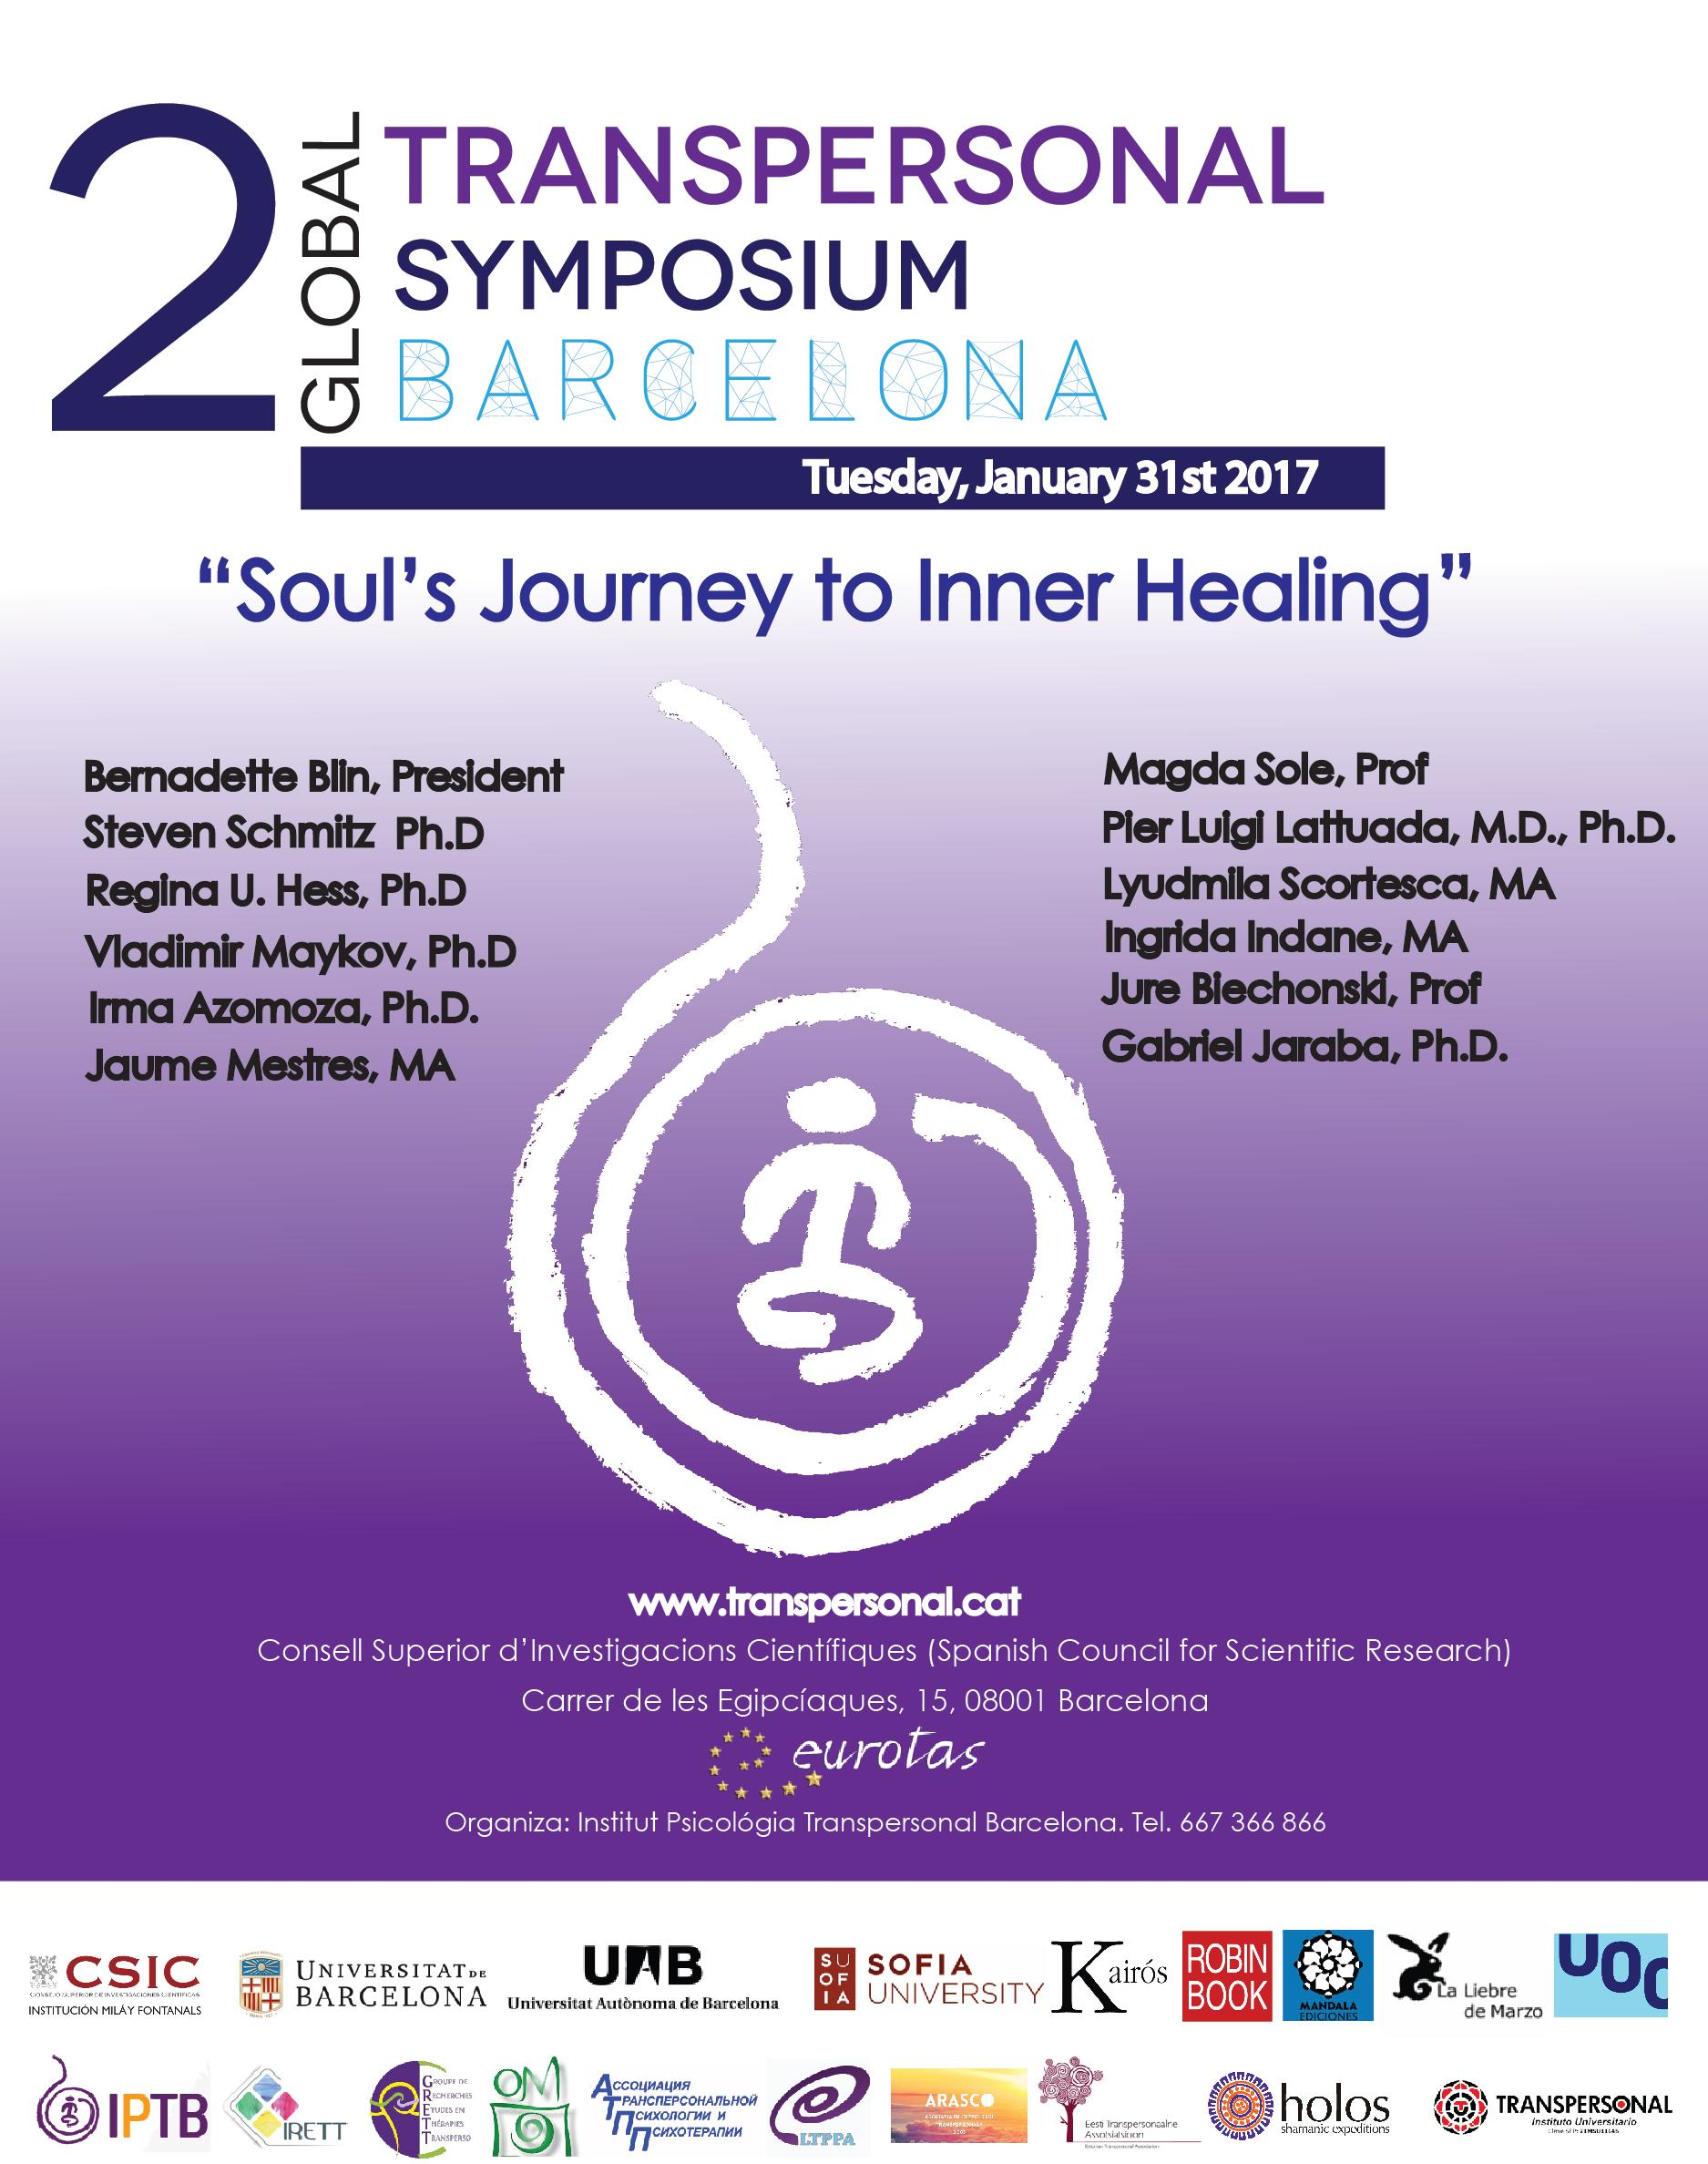 Global-Transpersonal-Symposium.jpg